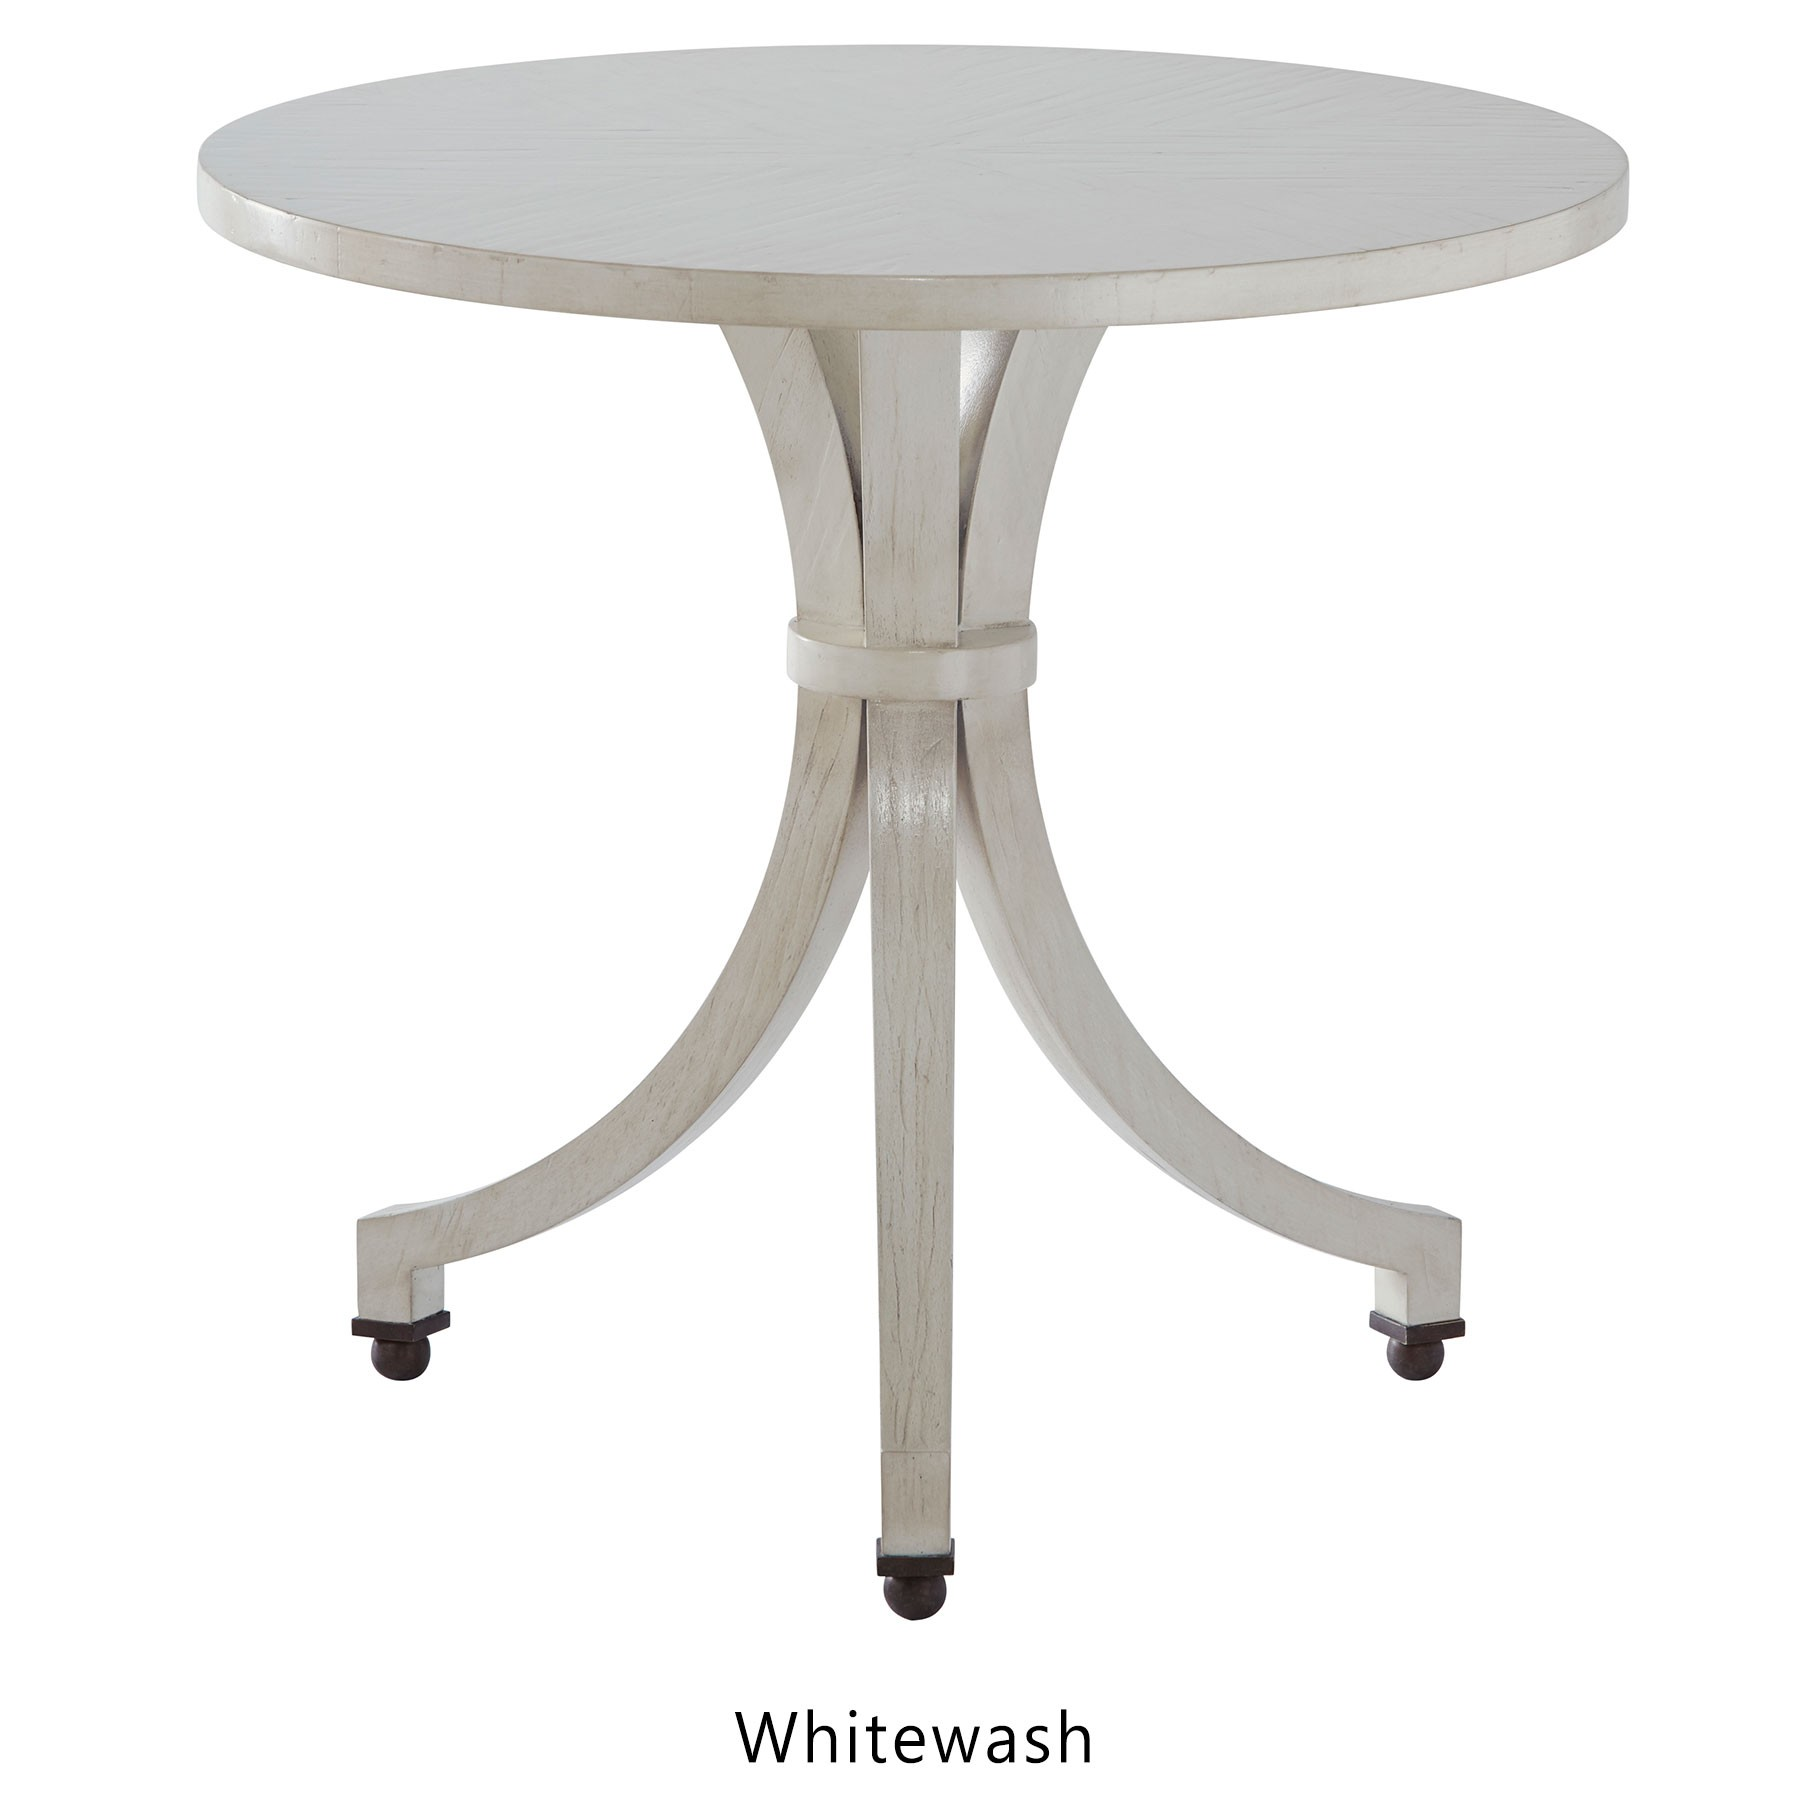 wetherley accent table custom theodore alexander whitewash wedding linens west elm arc lamp pier one pillows clearance trellis legs making end tables small slim bedside marble and